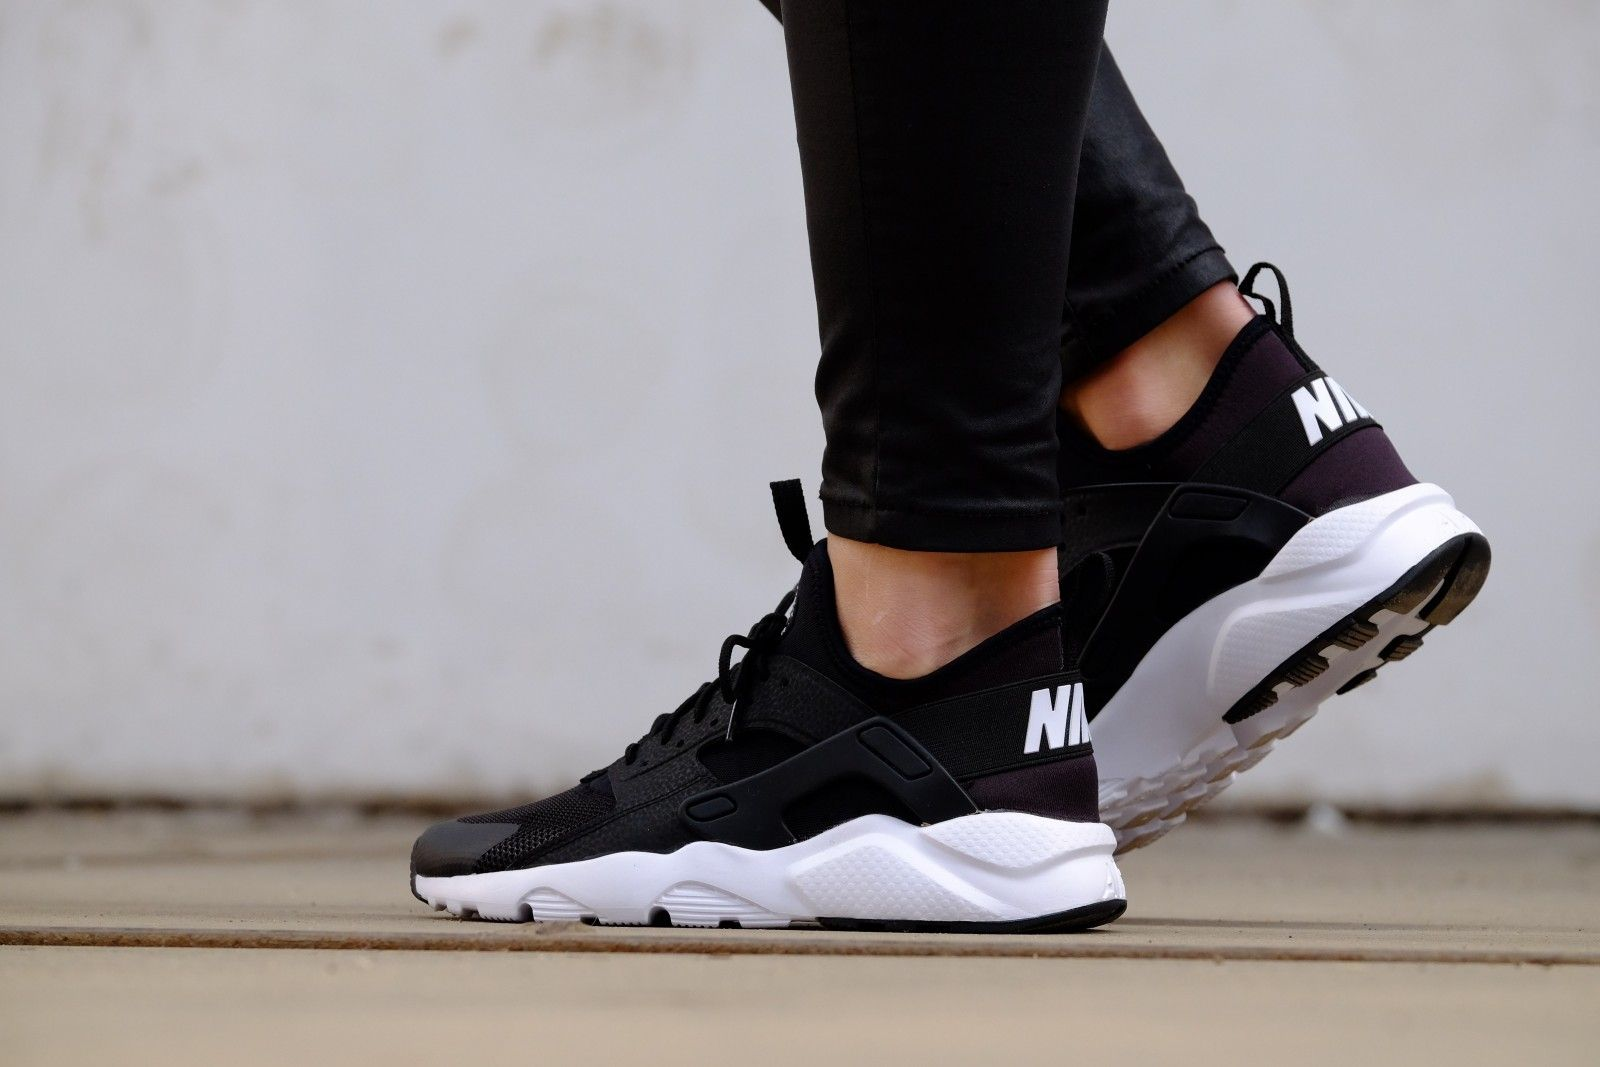 732ed8430b347 Nike Air Huarache Run Ultra GS Black  White - 847569-002